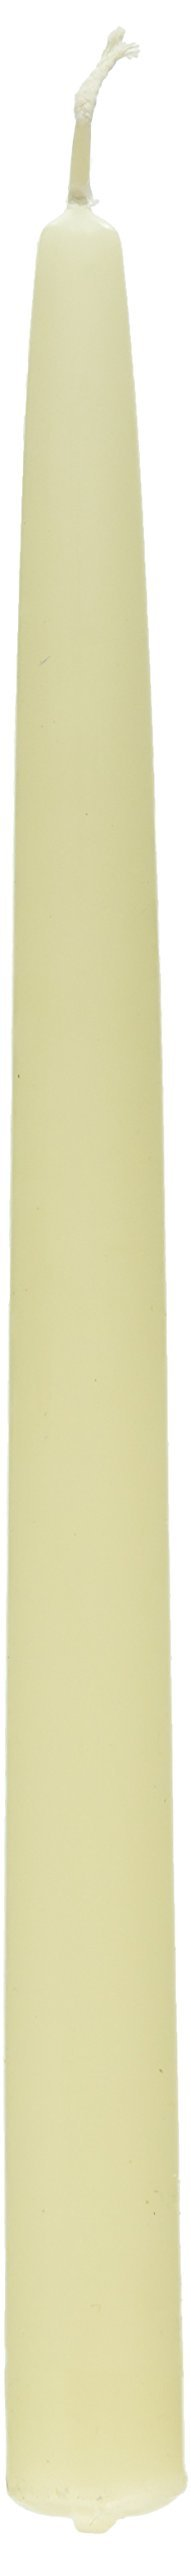 Colonial Candle Ivory Unscented 12 Inch Handipt Taper Candles